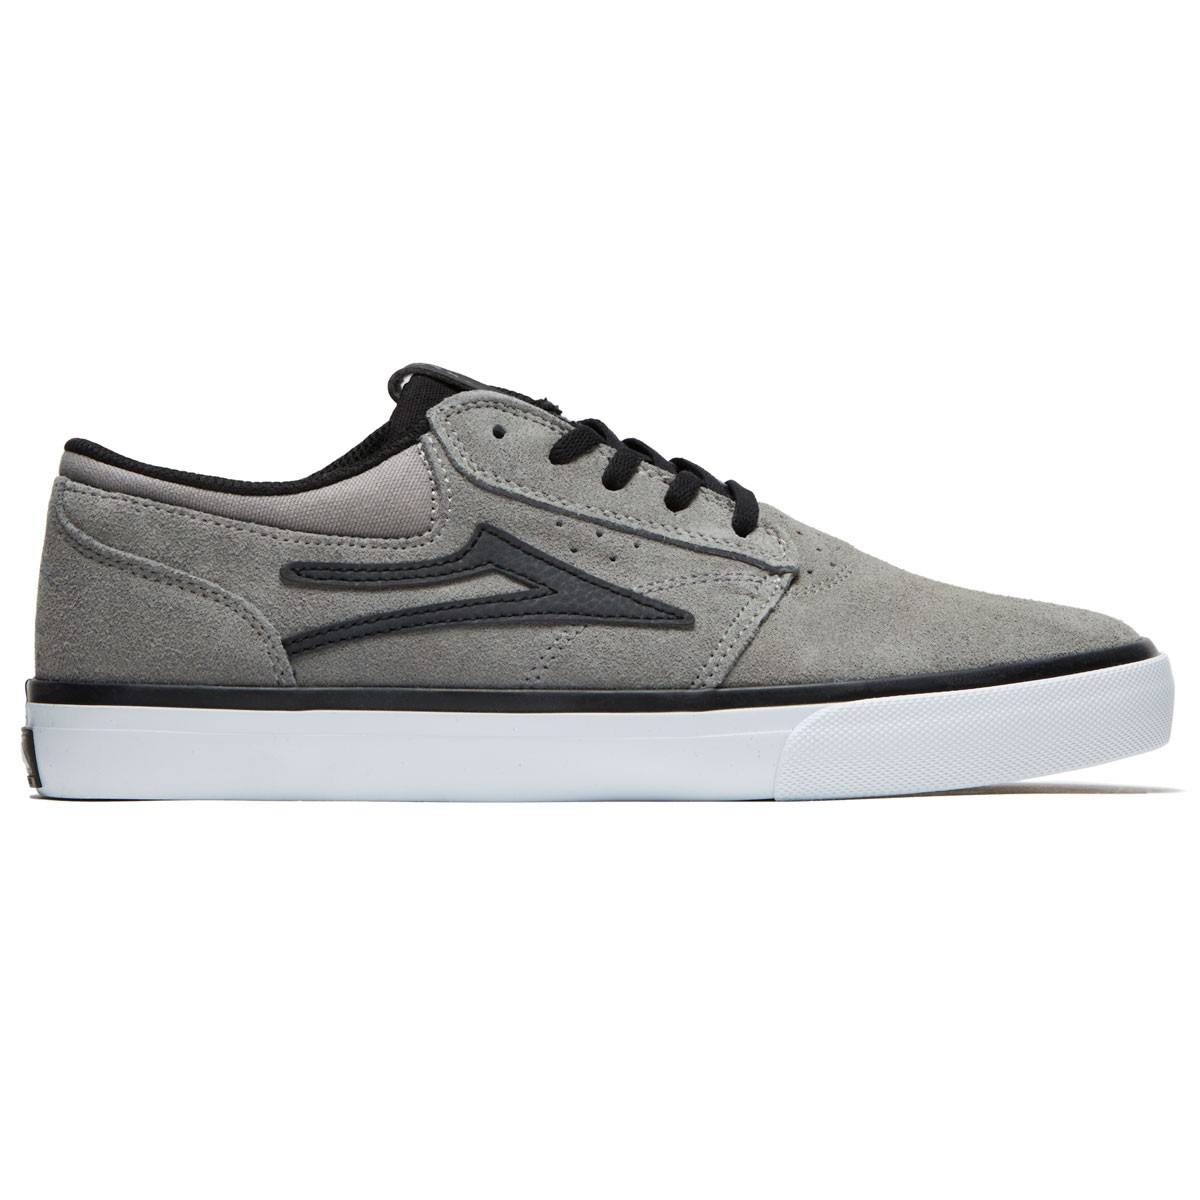 9ae6b914e2 Lakai X Hard Luck Griffin Shoes - Grey Black Suede - 10.0